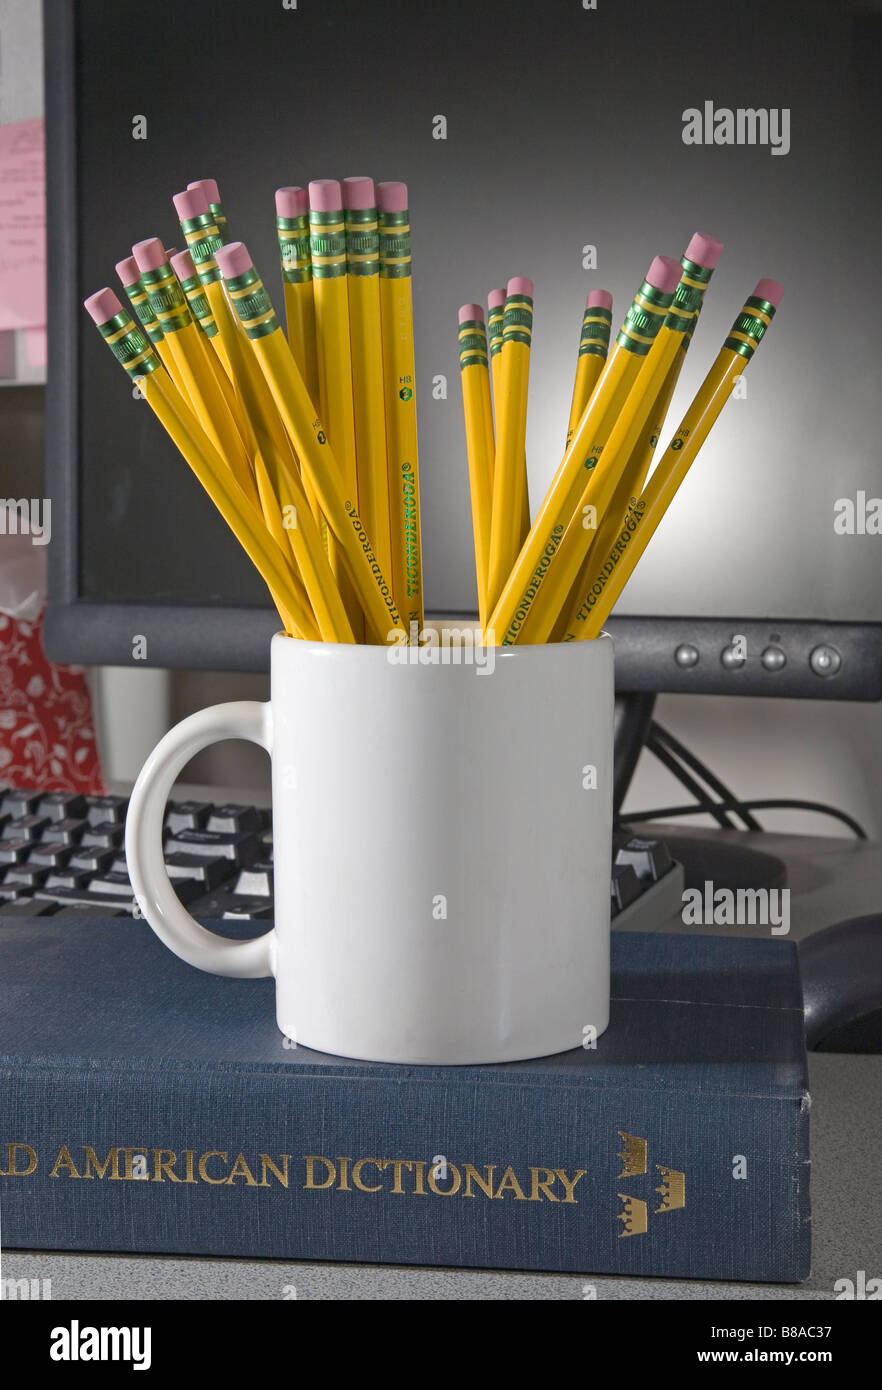 A cup or mug of number 2 Ticonderoga lead or graphite pencils and erasers in front of a computer and sitting on - Stock Image